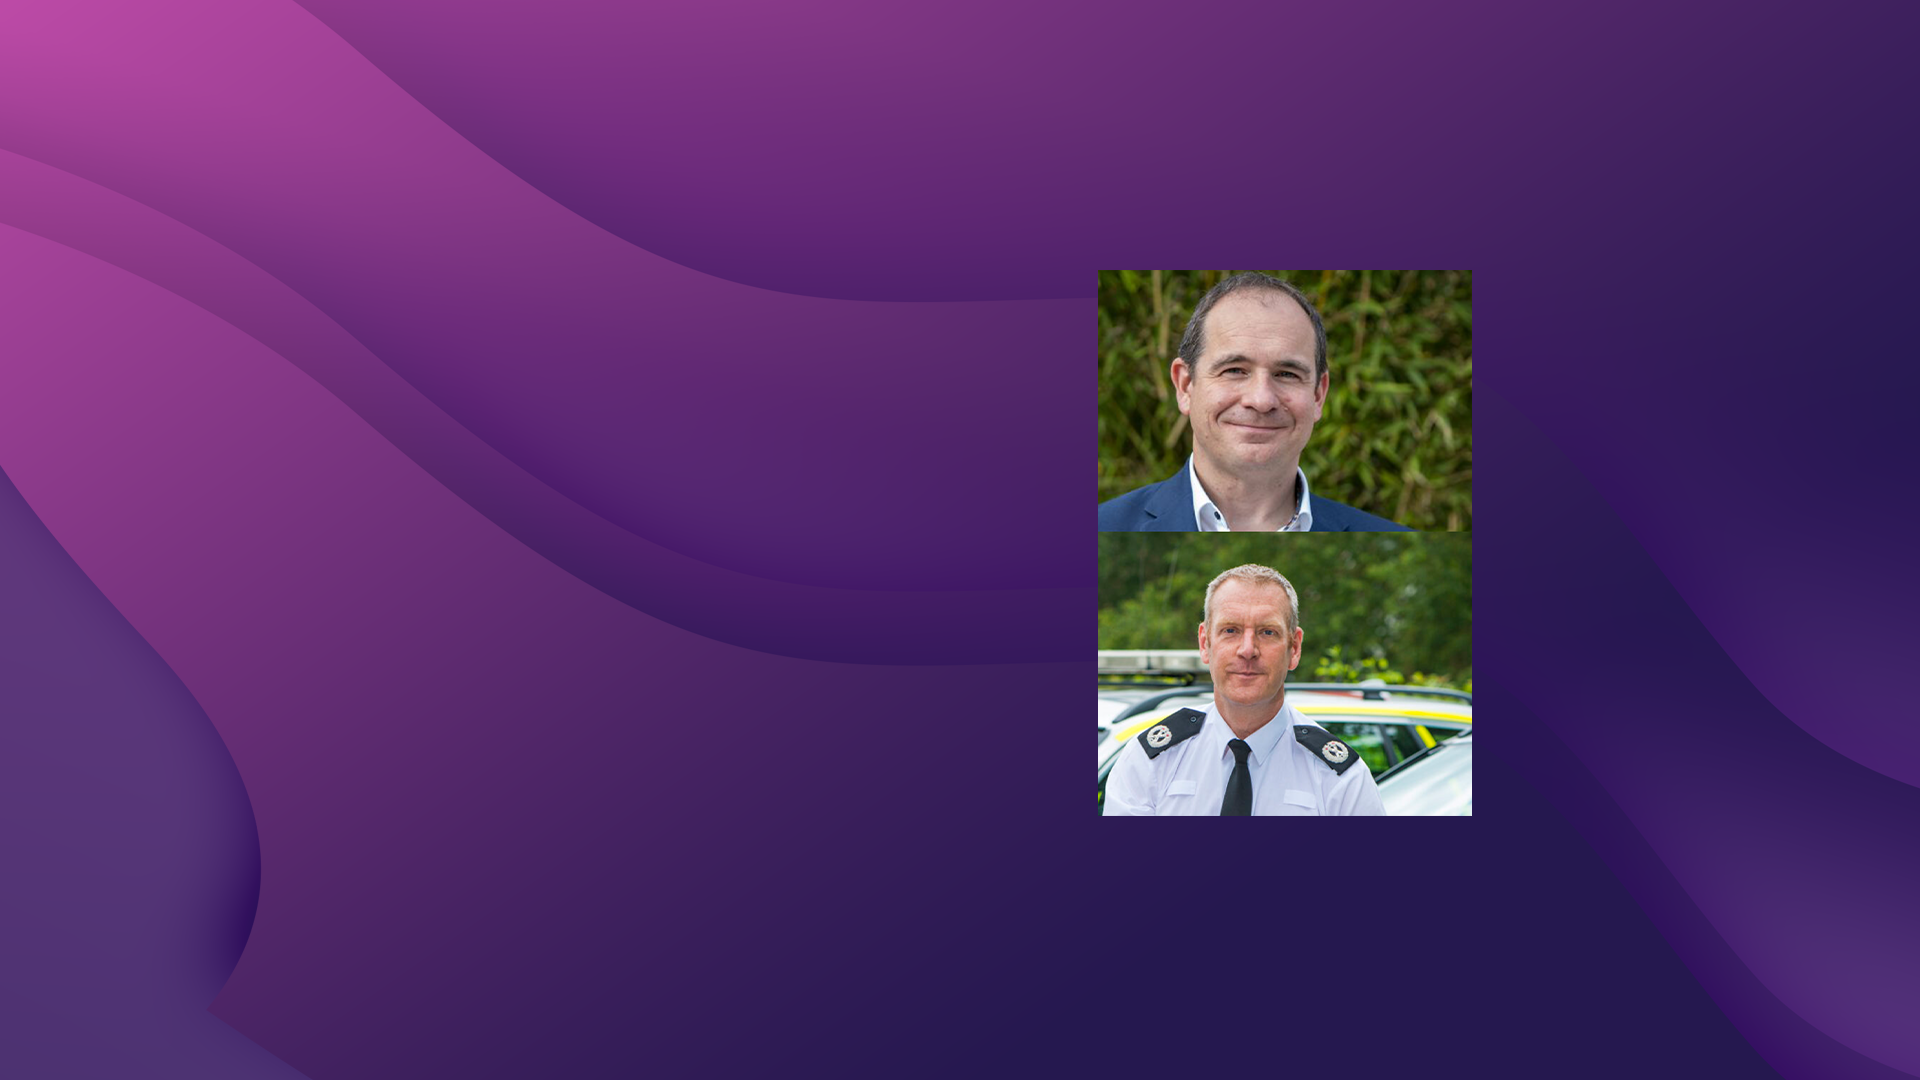 1677: The Role of Data Analytics Technology in Data Driven Policing